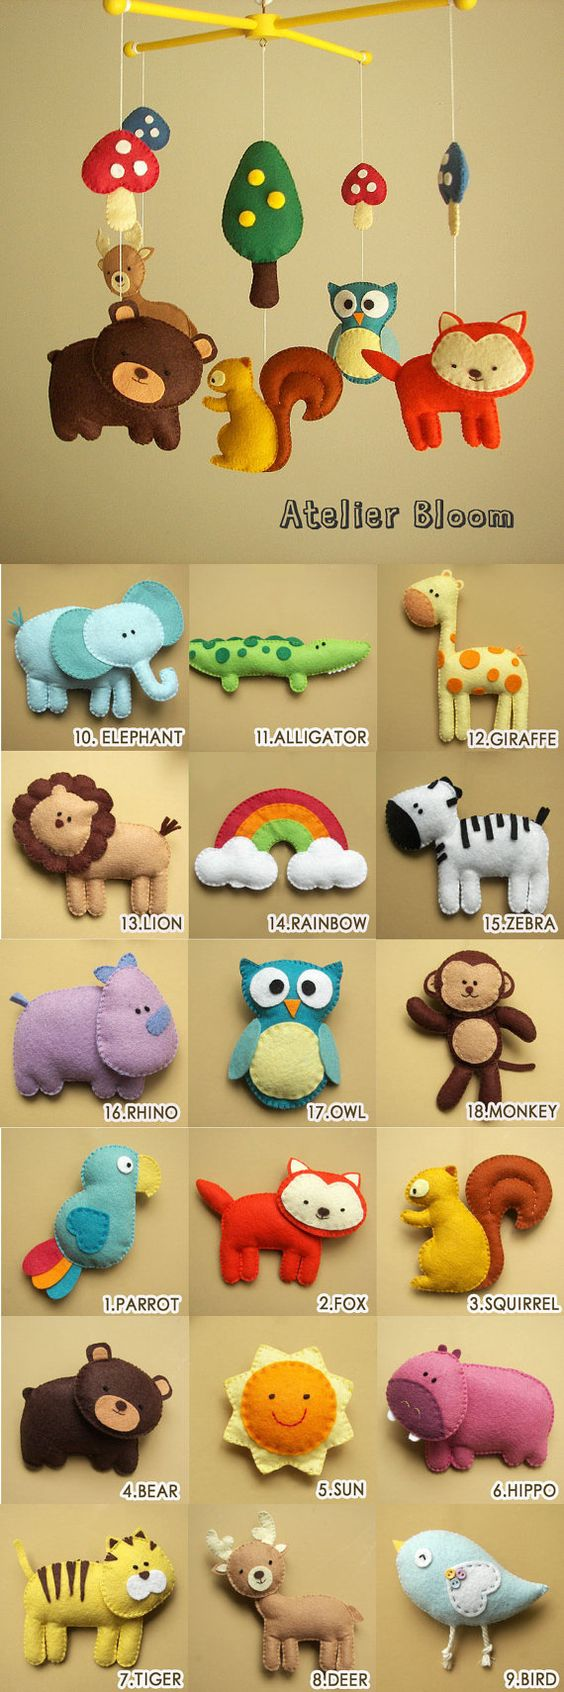 Adorable felt animals!